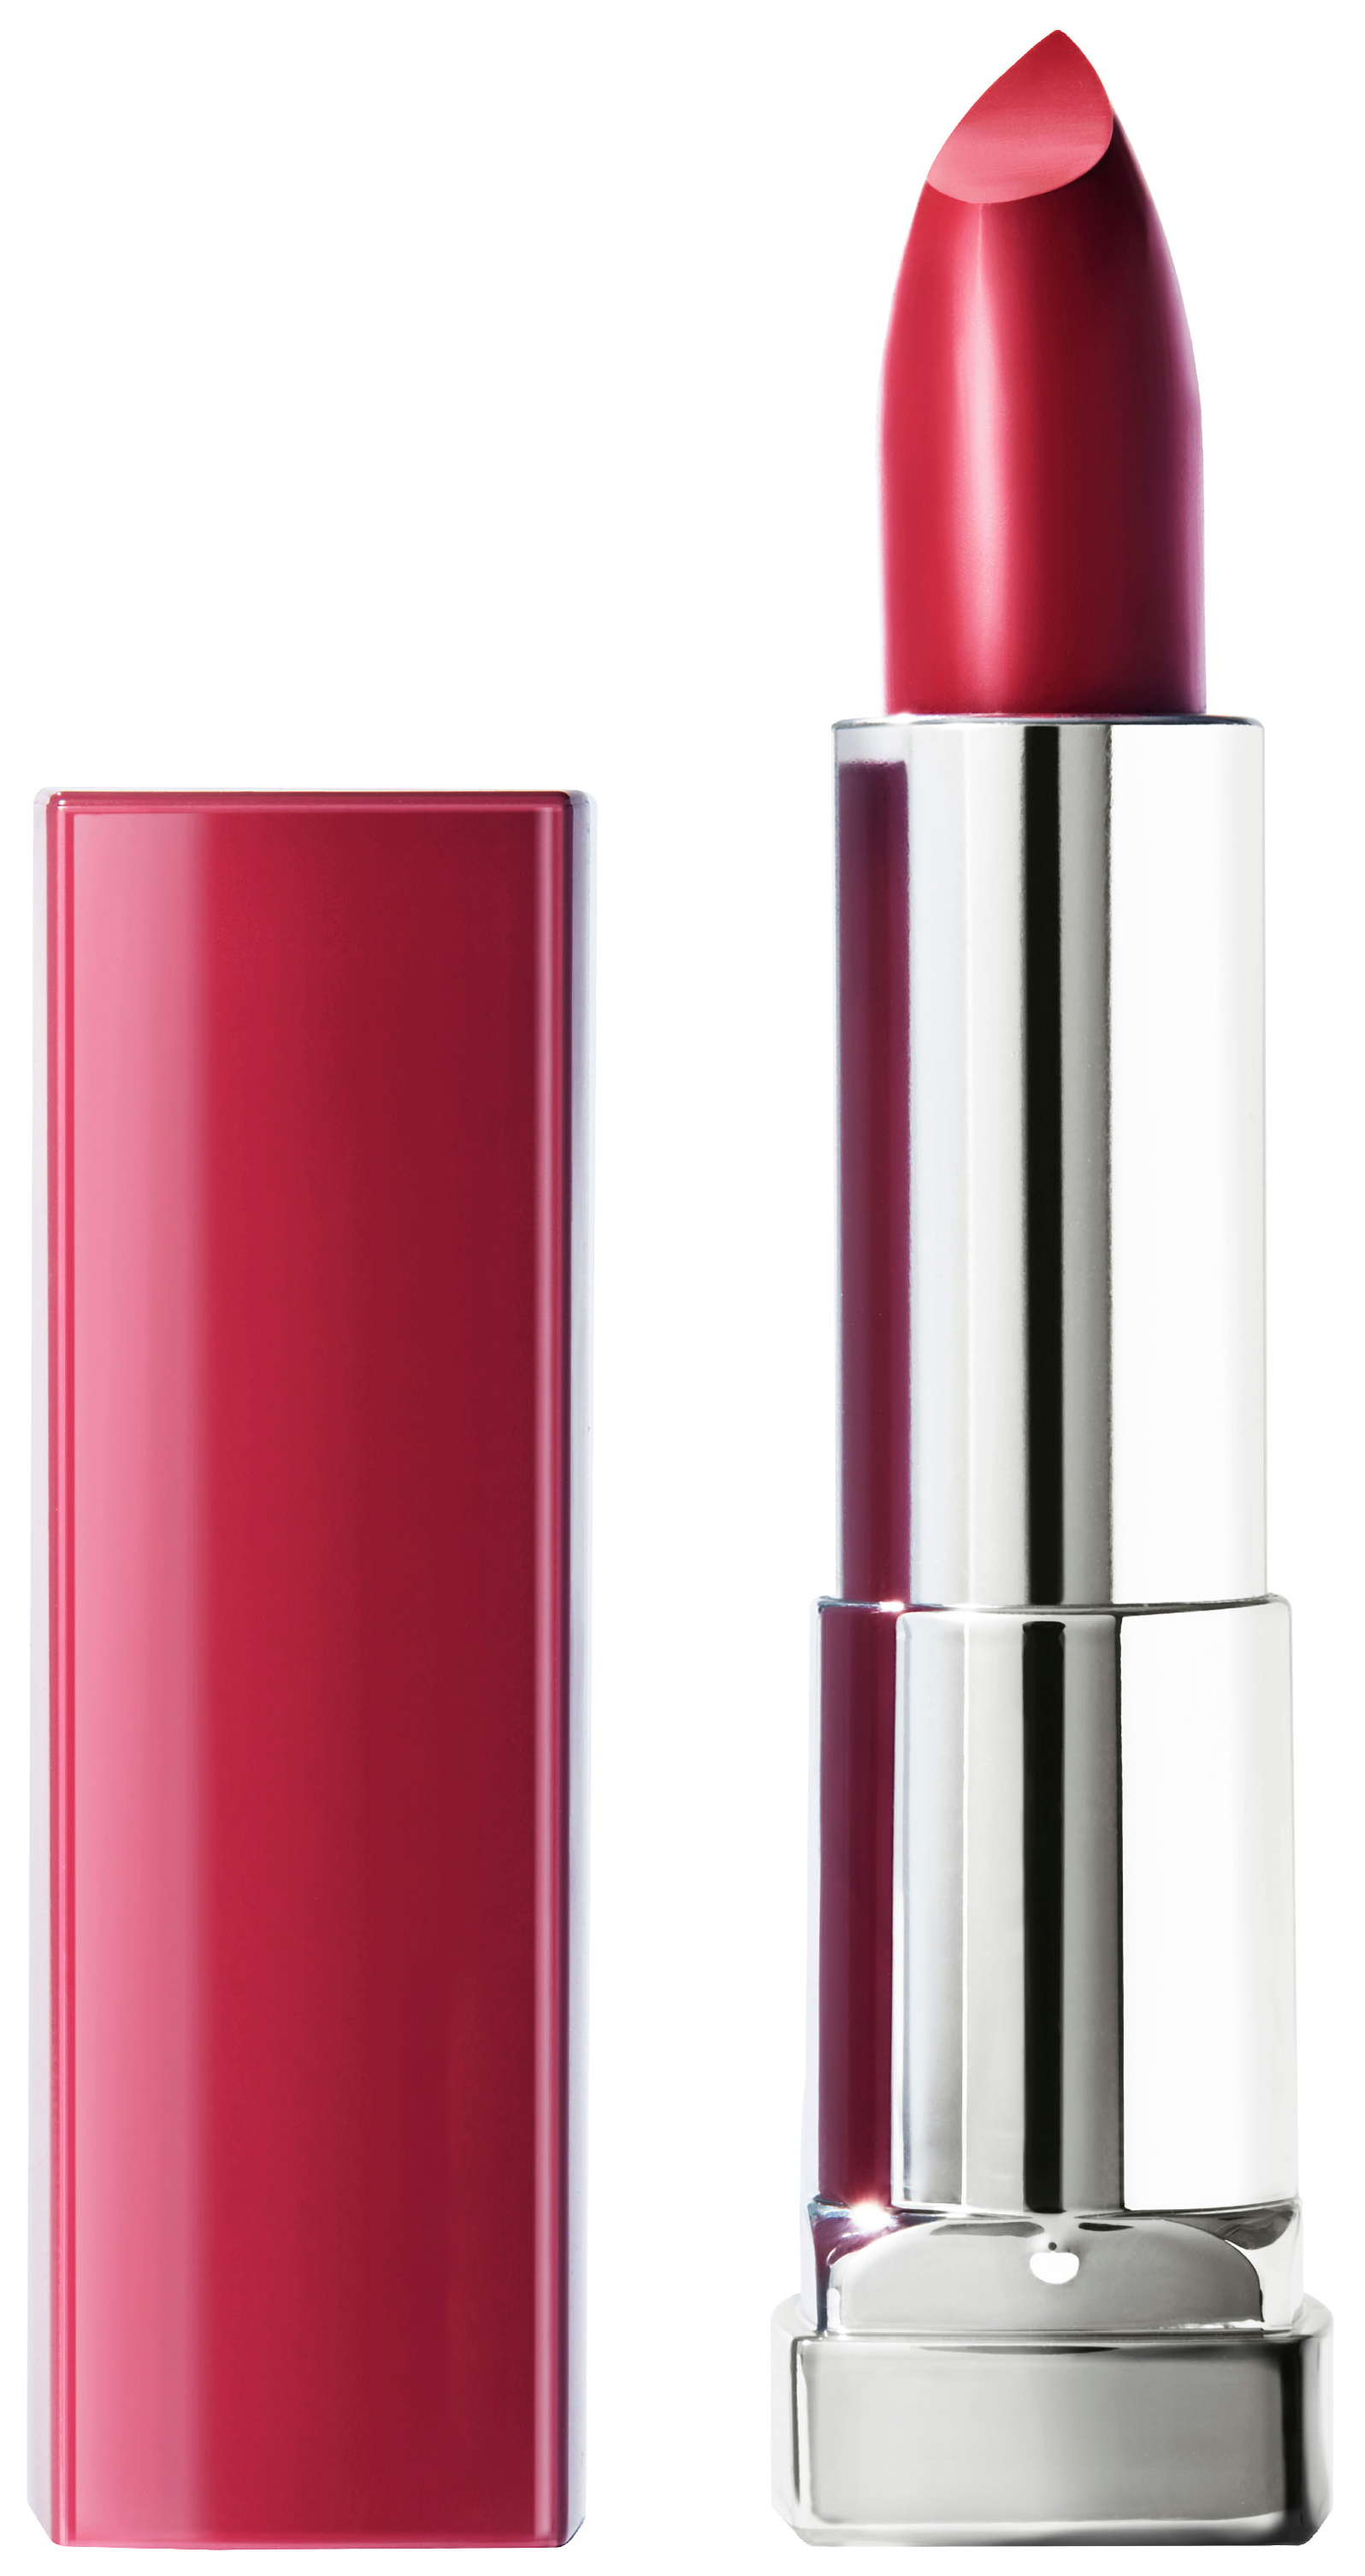 Помада Maybelline Color Sensational Made for all Lipstick 388 Plum For Me 5 г